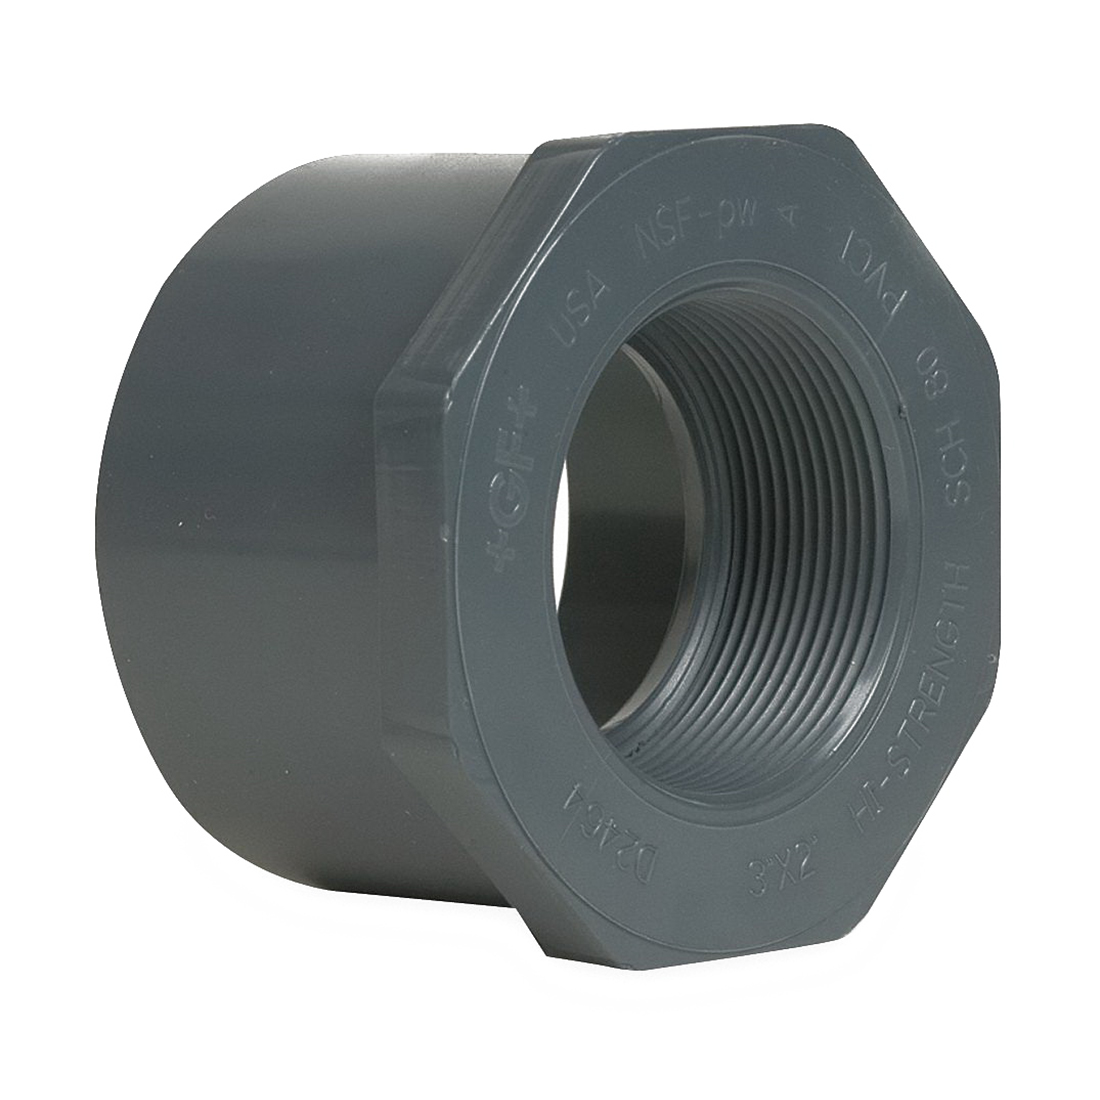 Gray PVC SCH 80 Flush Style Reducer Bushing, 2-1/2 in x 2 in, Spigot x FNPT